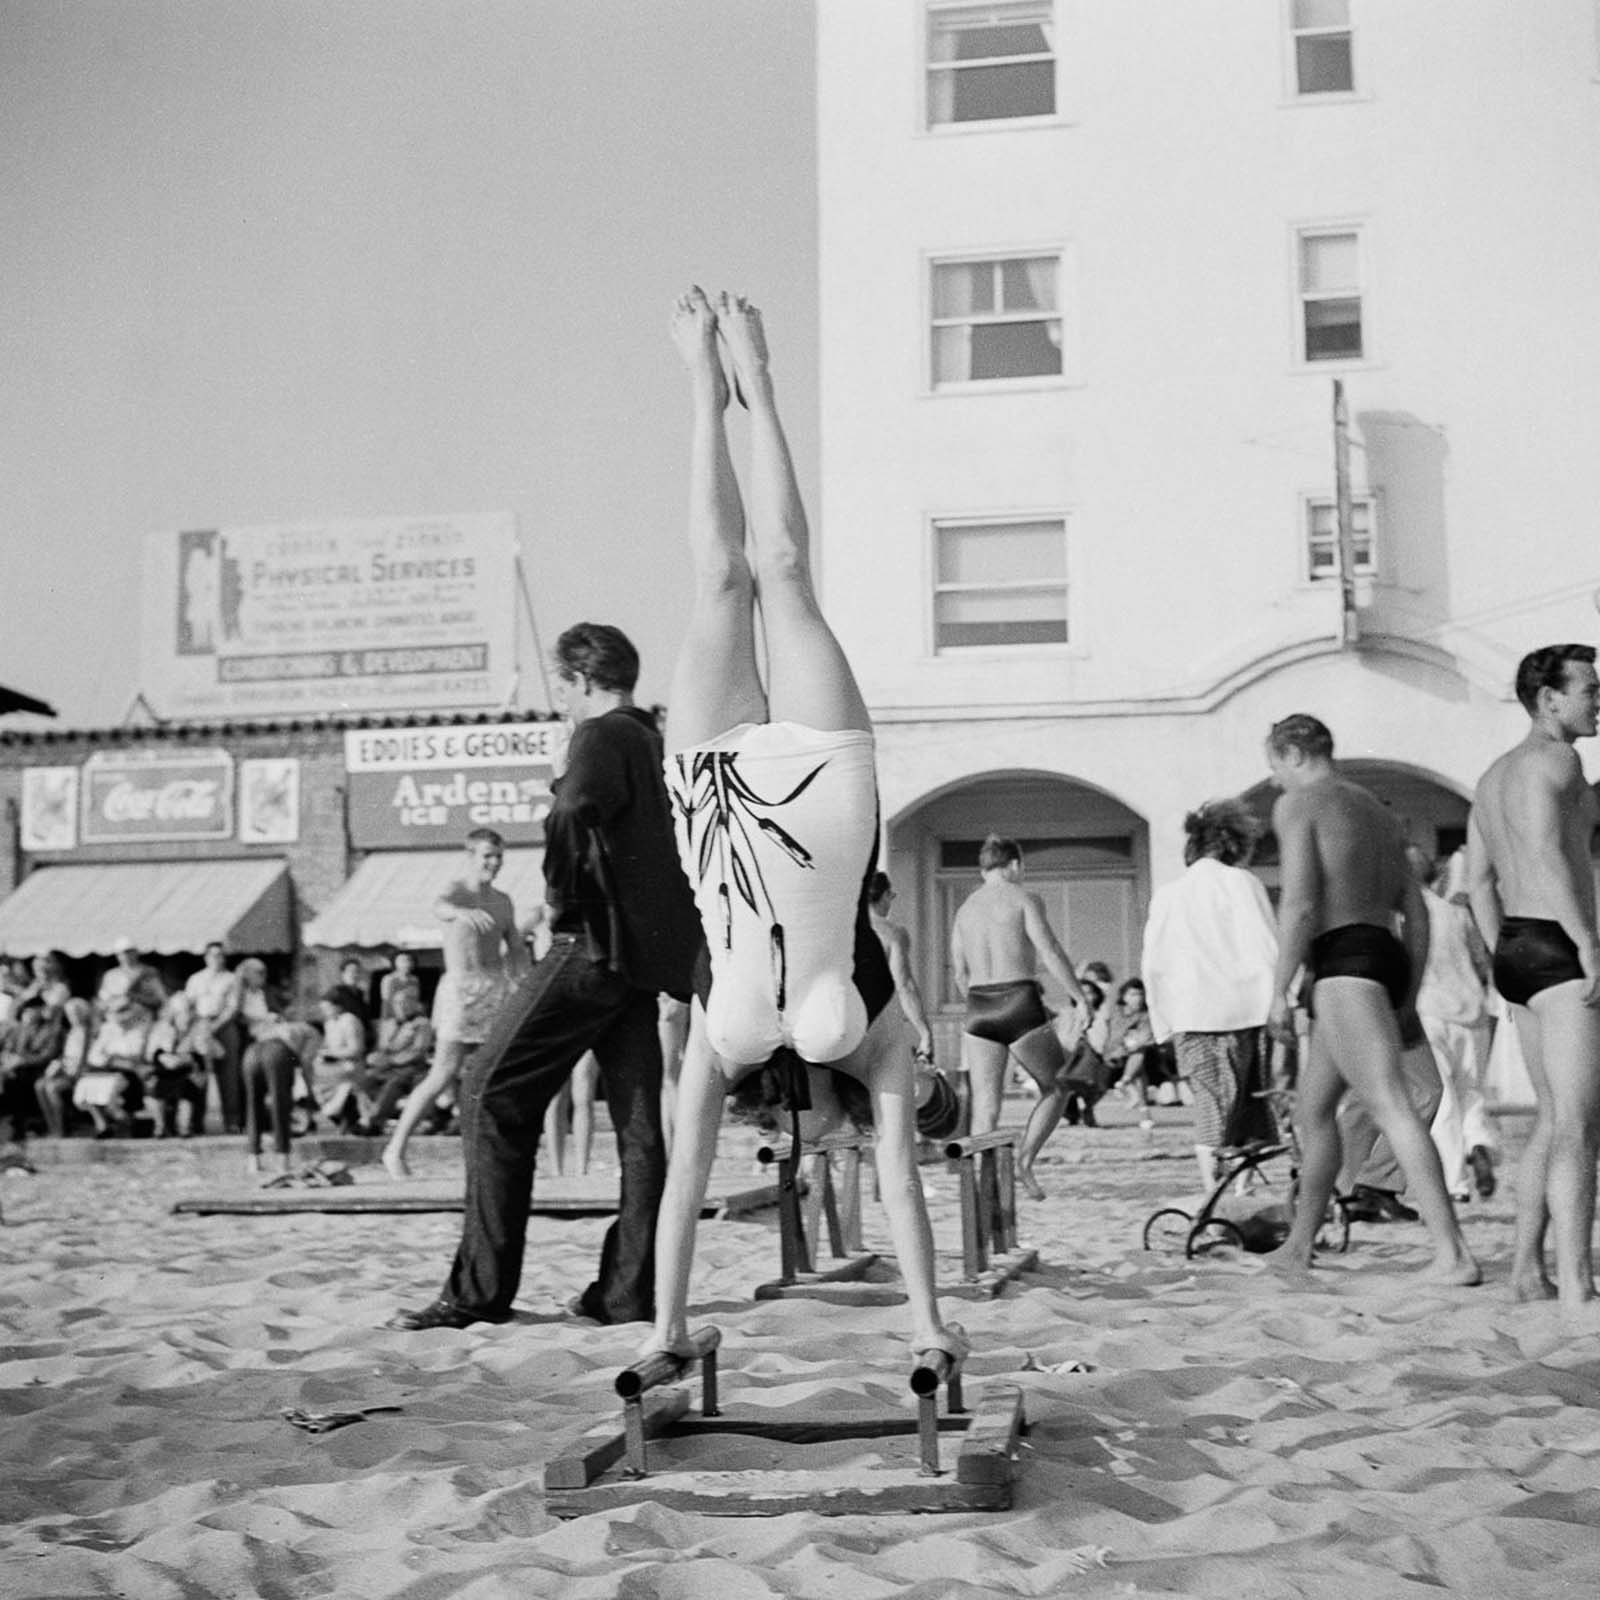 Exercising at the Muscle Beach.